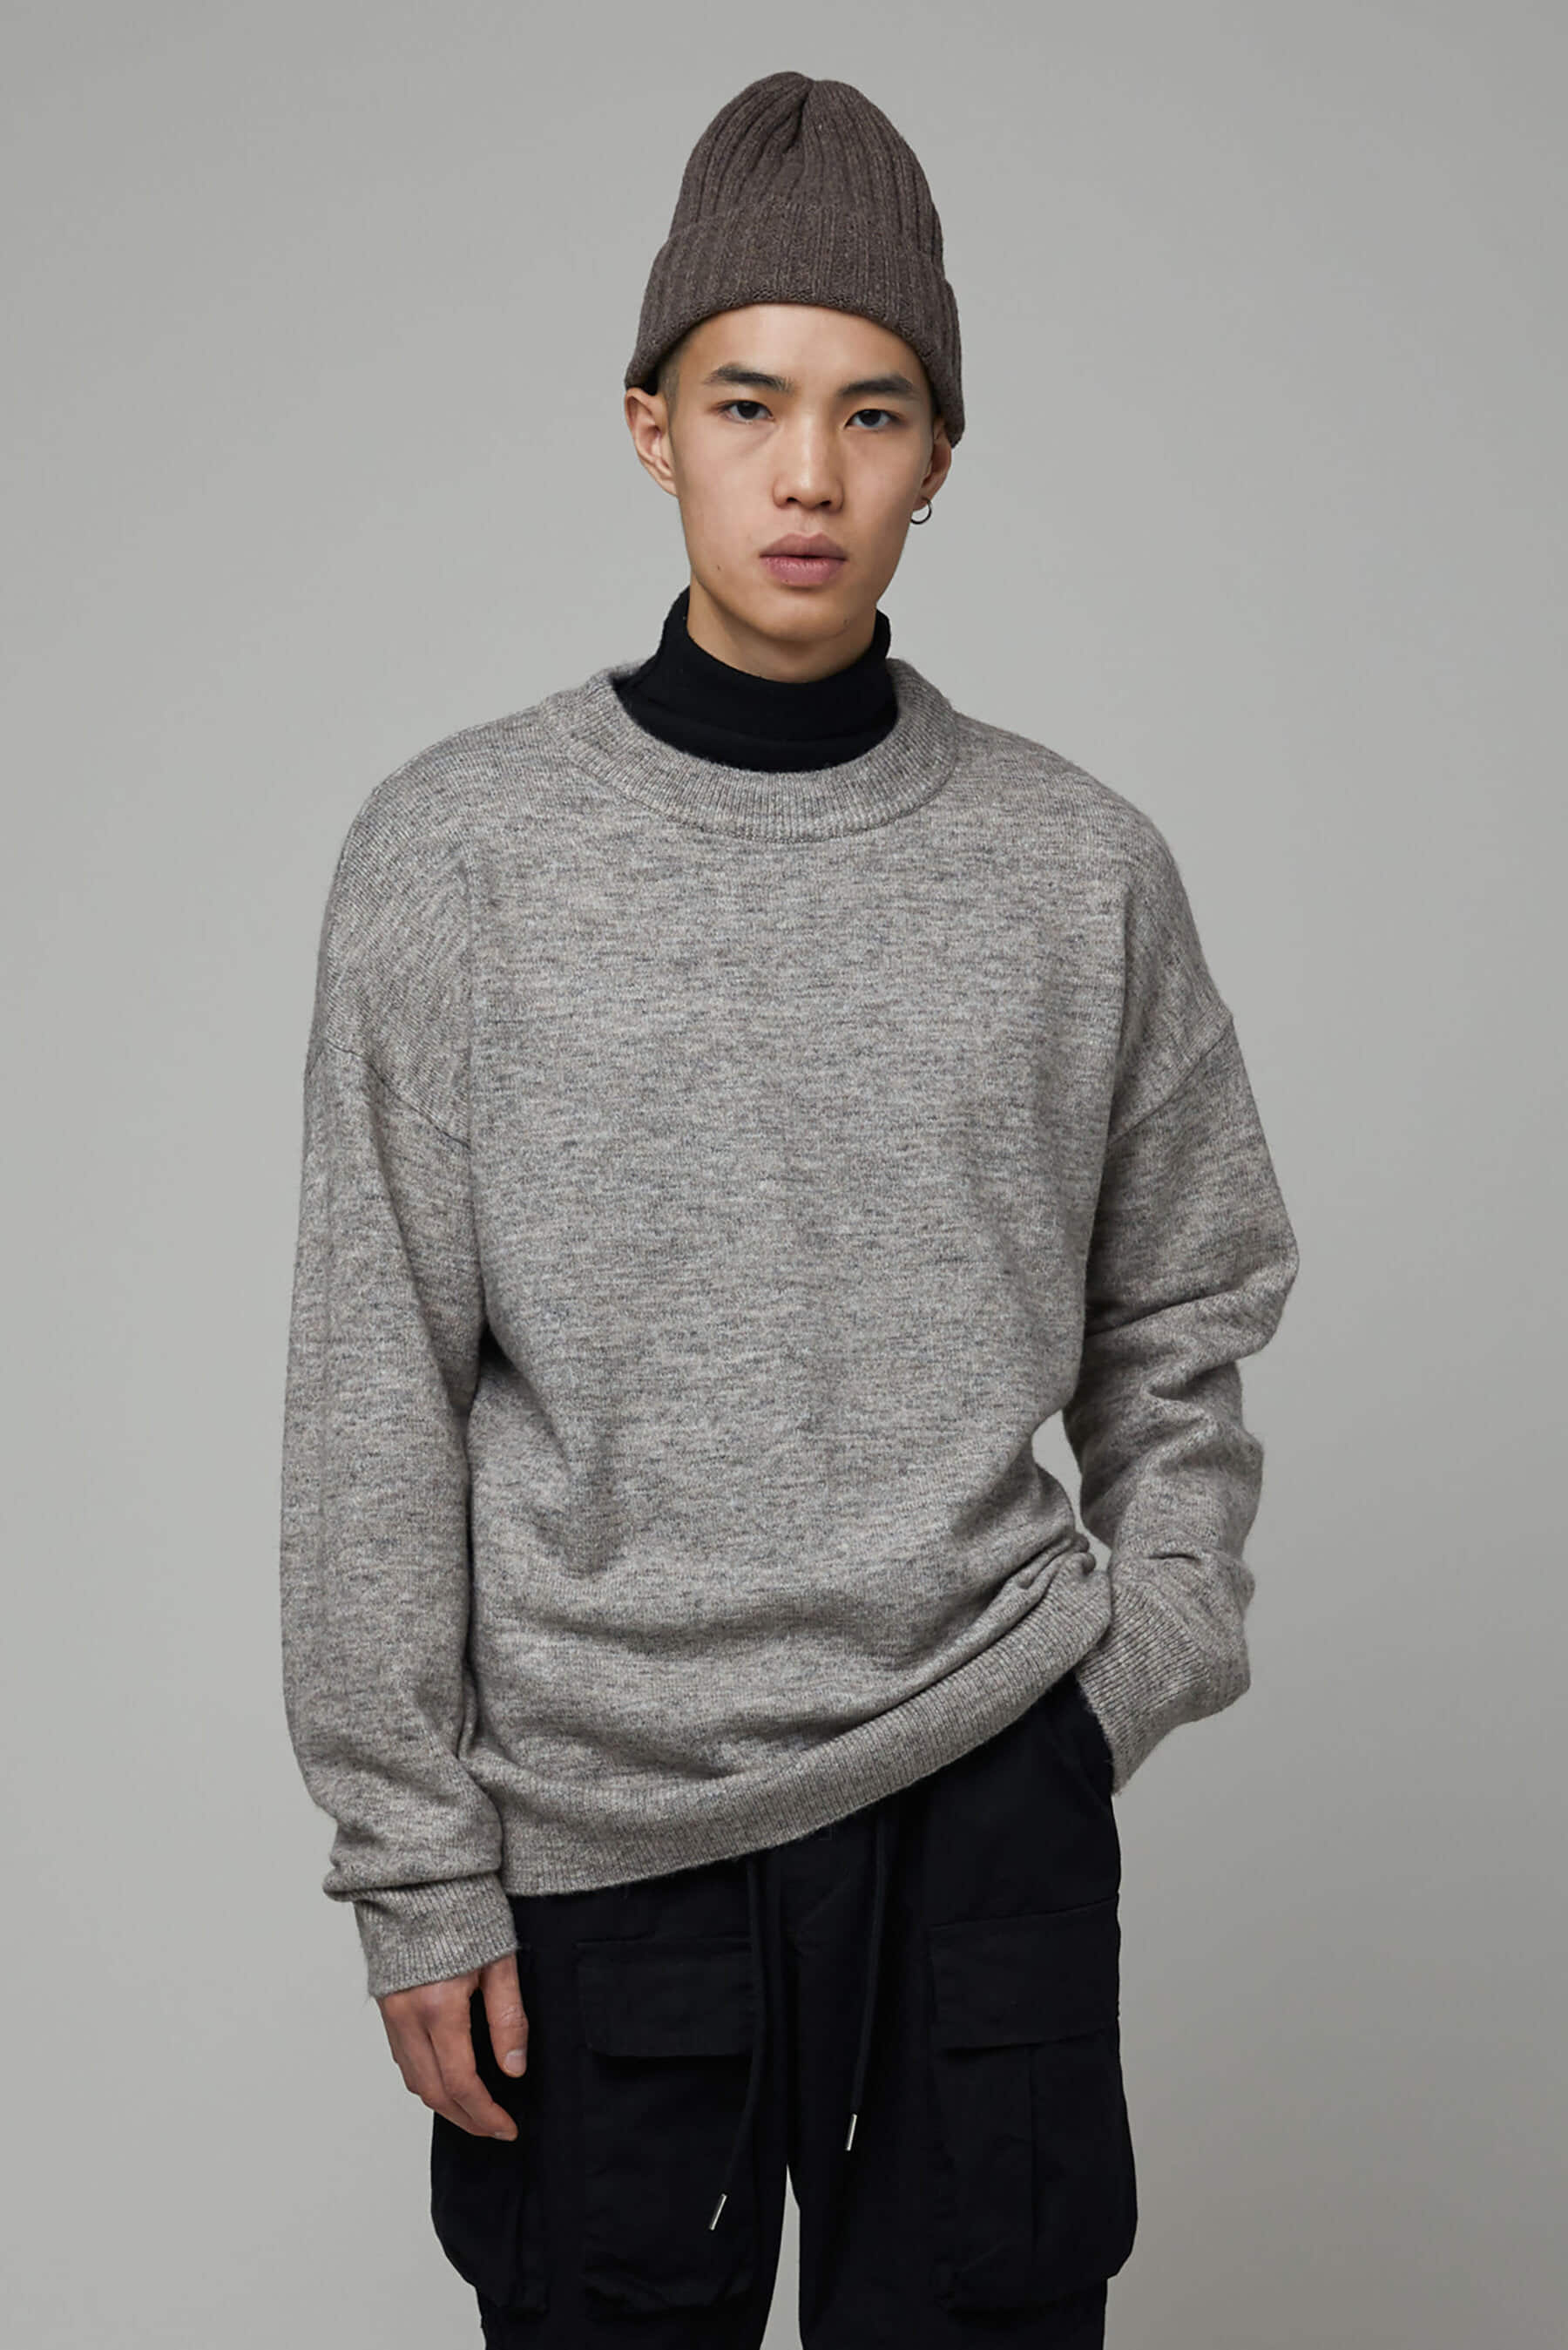 Sweater 3940 by Oak + Fort